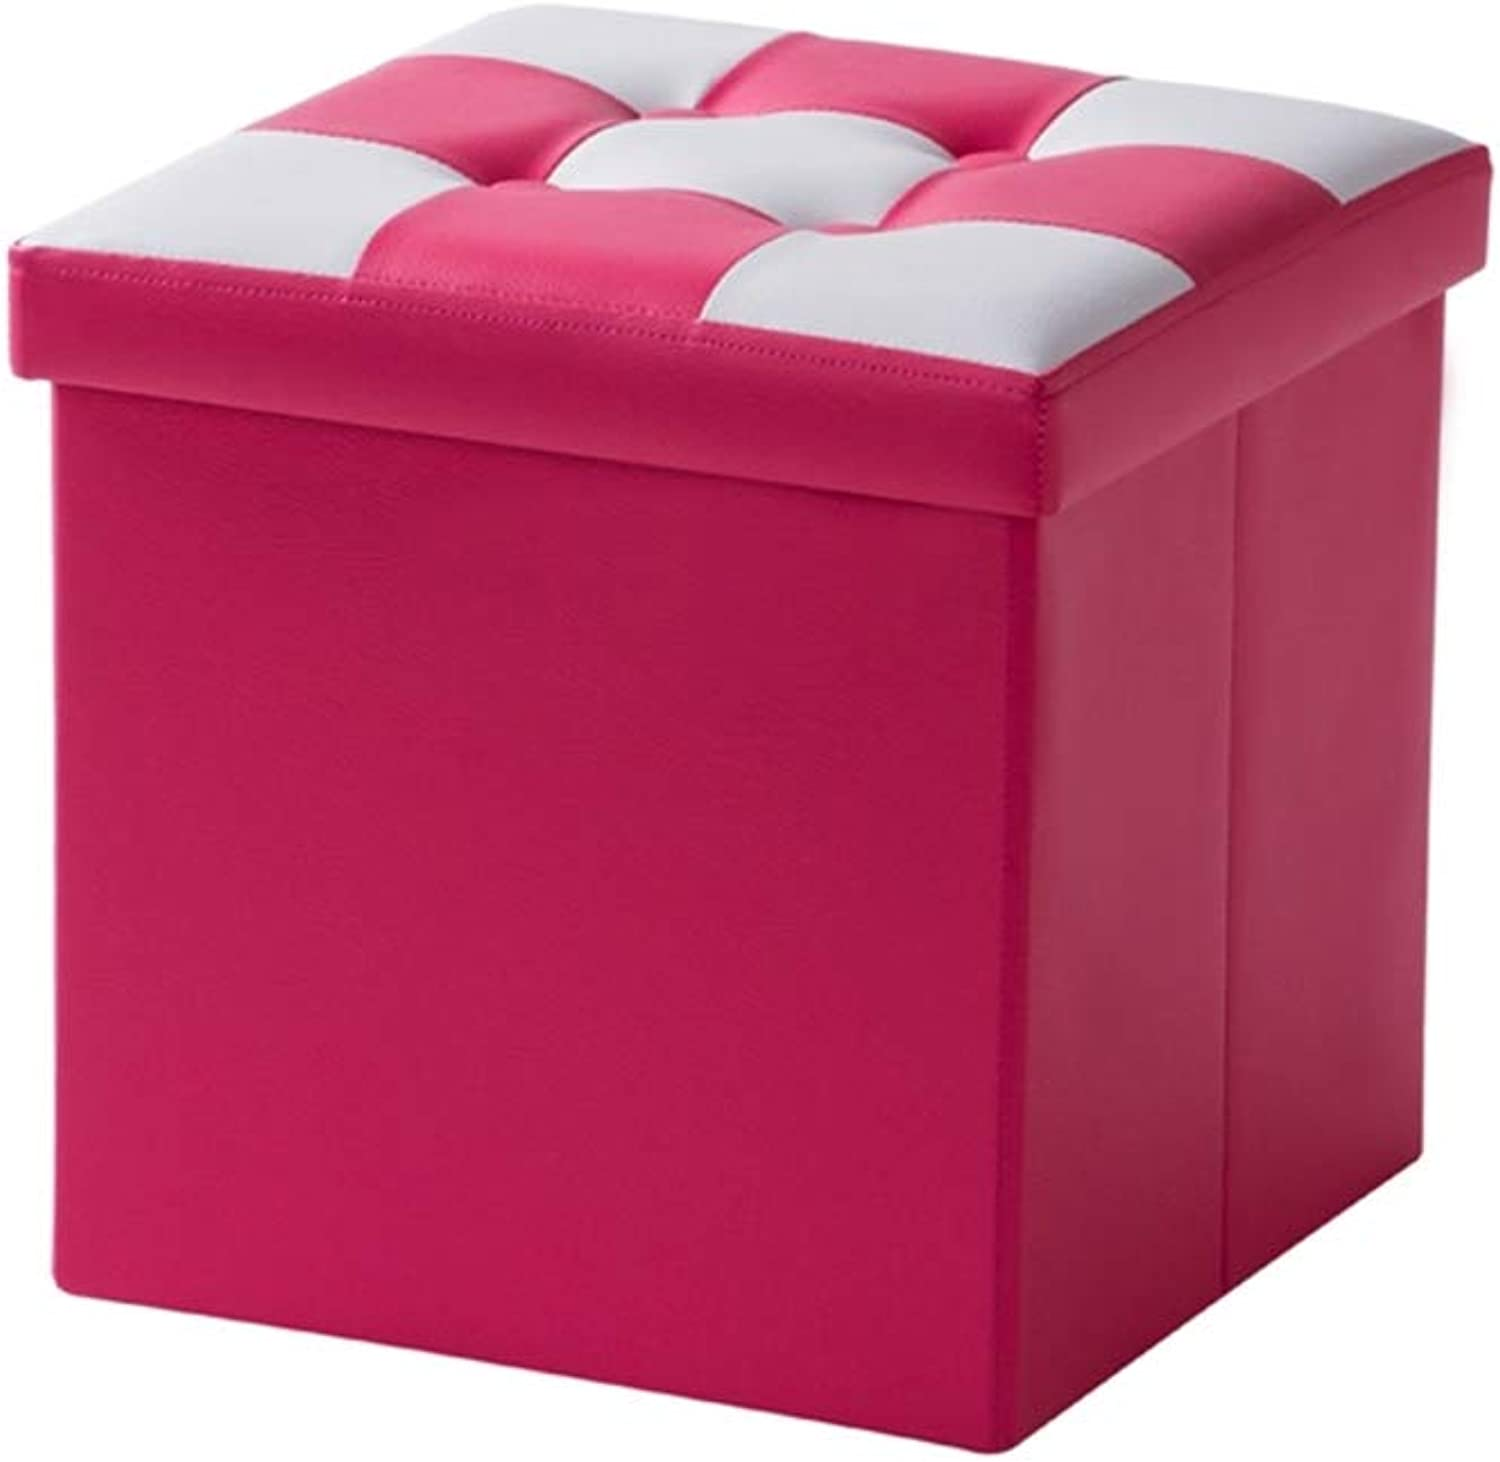 ZhiGe Storage seat,Storage Storage Box shoes Changing Sofa Stool Sitting on The Stool of People's Snacks Books and Toys